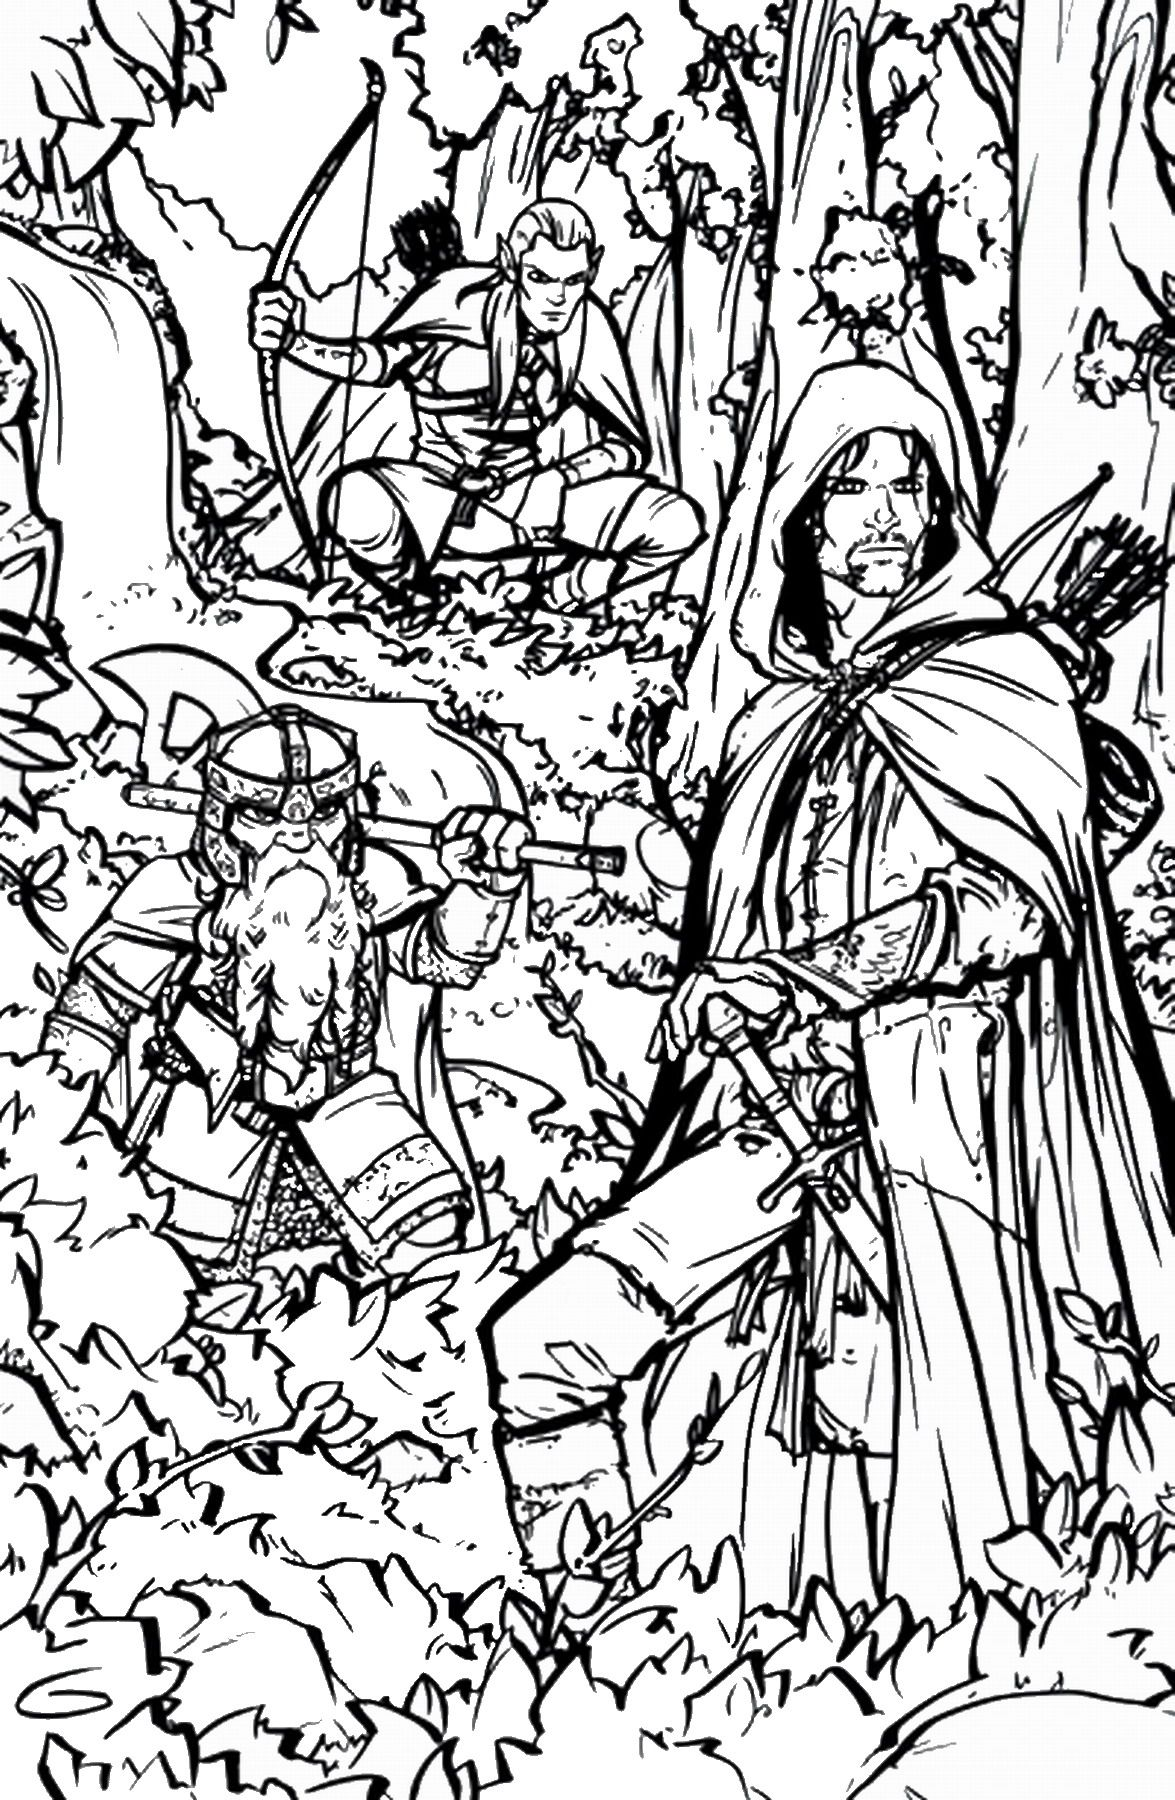 Lord Of The Rings Coloring Pages Coloring Pages Coloring Book Pages Coloring Pictures